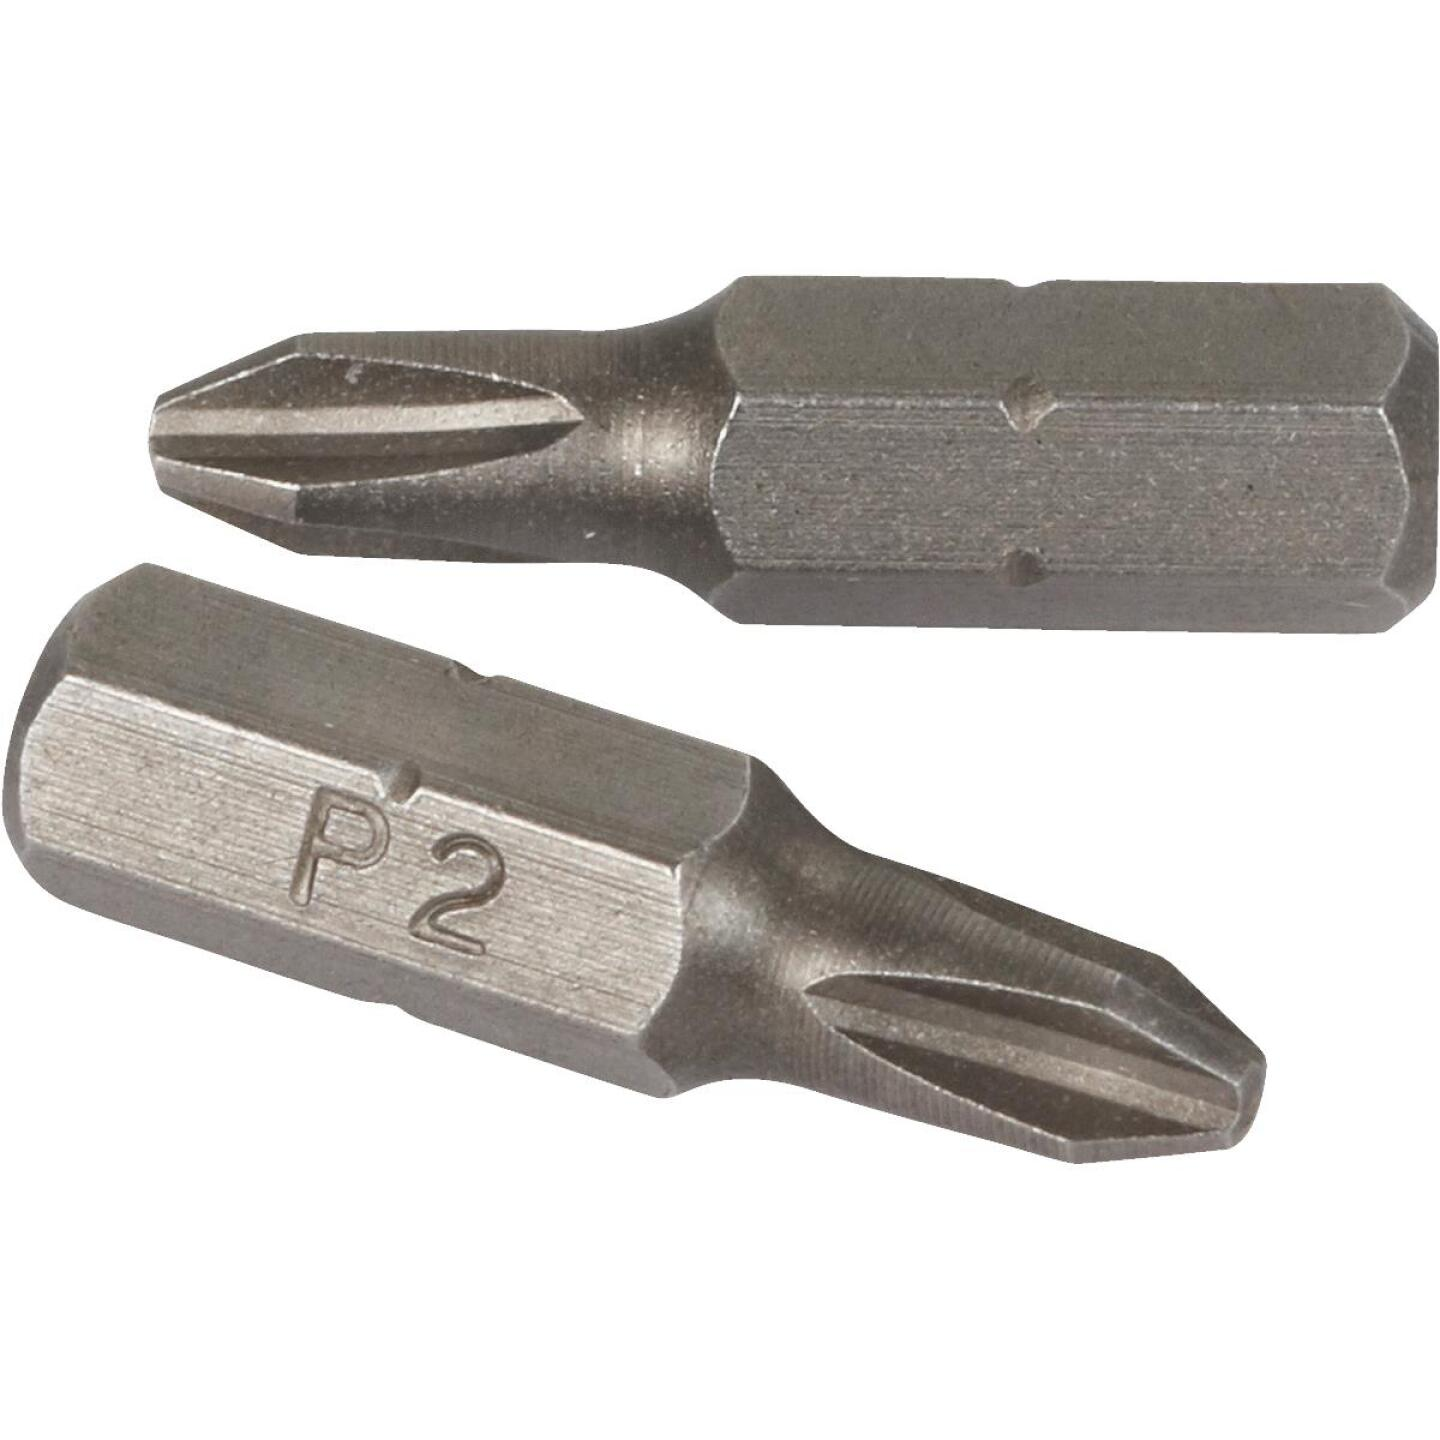 1 In. Phillips No. 2 Drywall Insert Bit Image 3